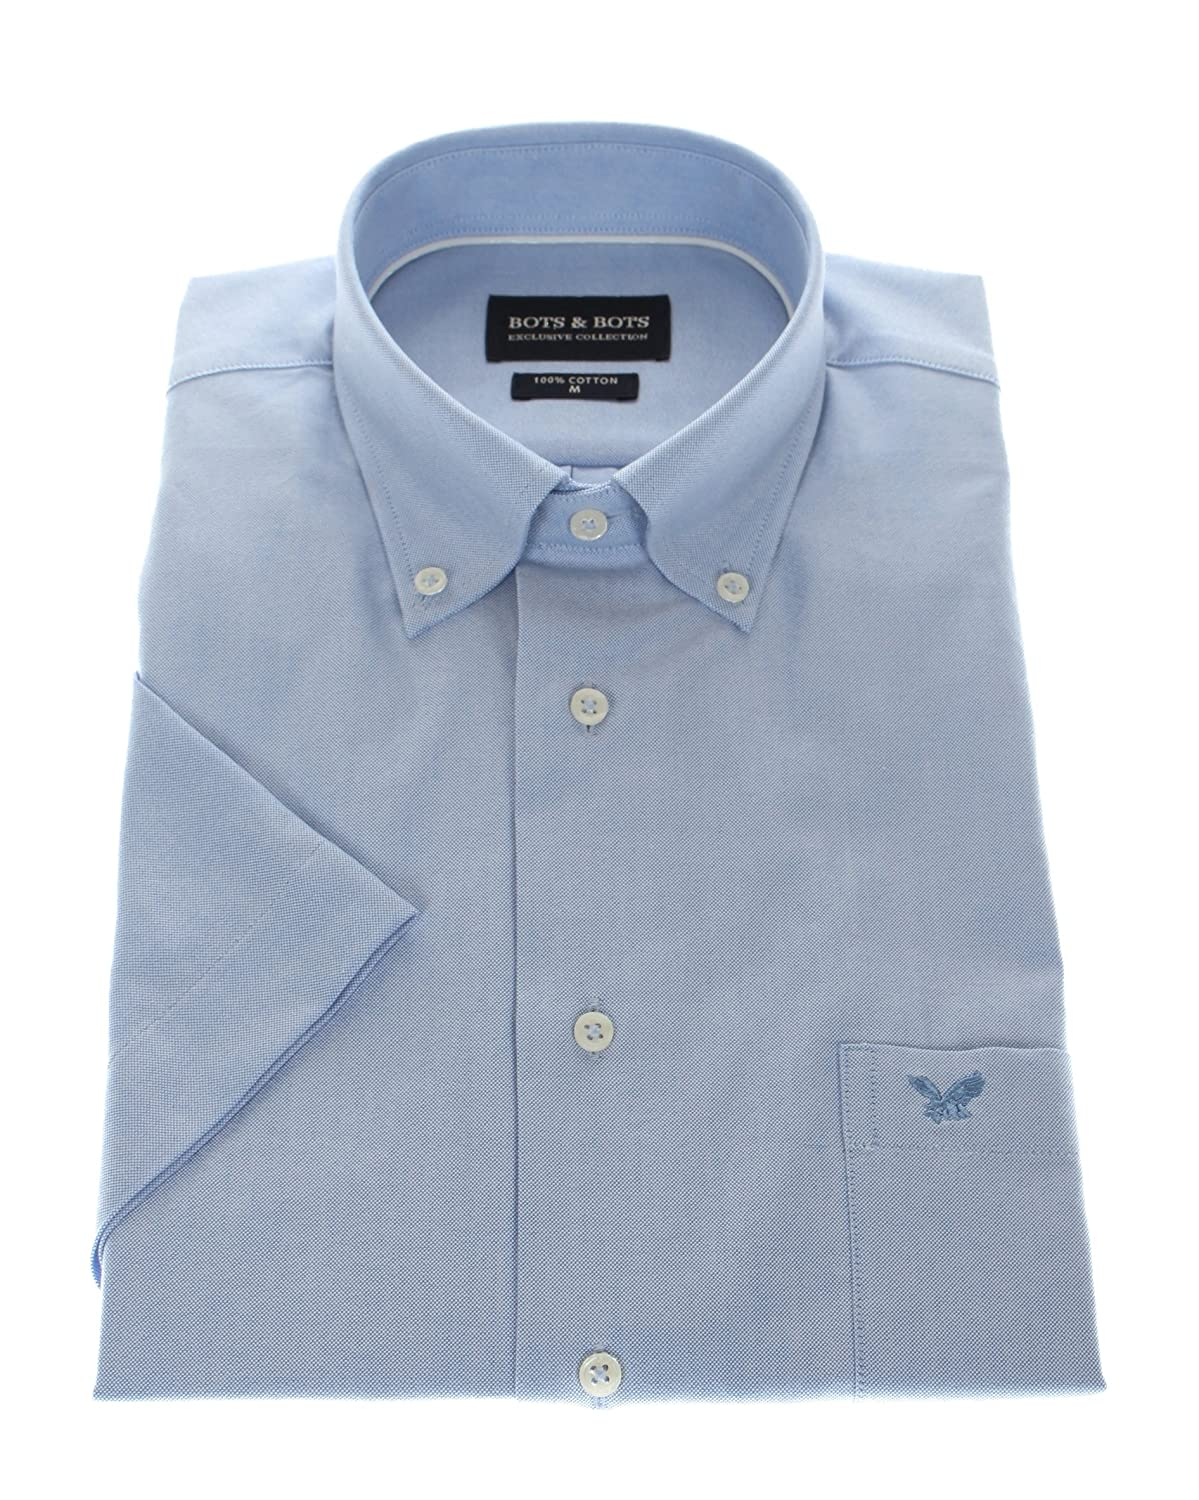 167004 Bots & Bots Exclusive Collection - Gents Shirt Short Sleeves Cotton Buton Down Normal Fit